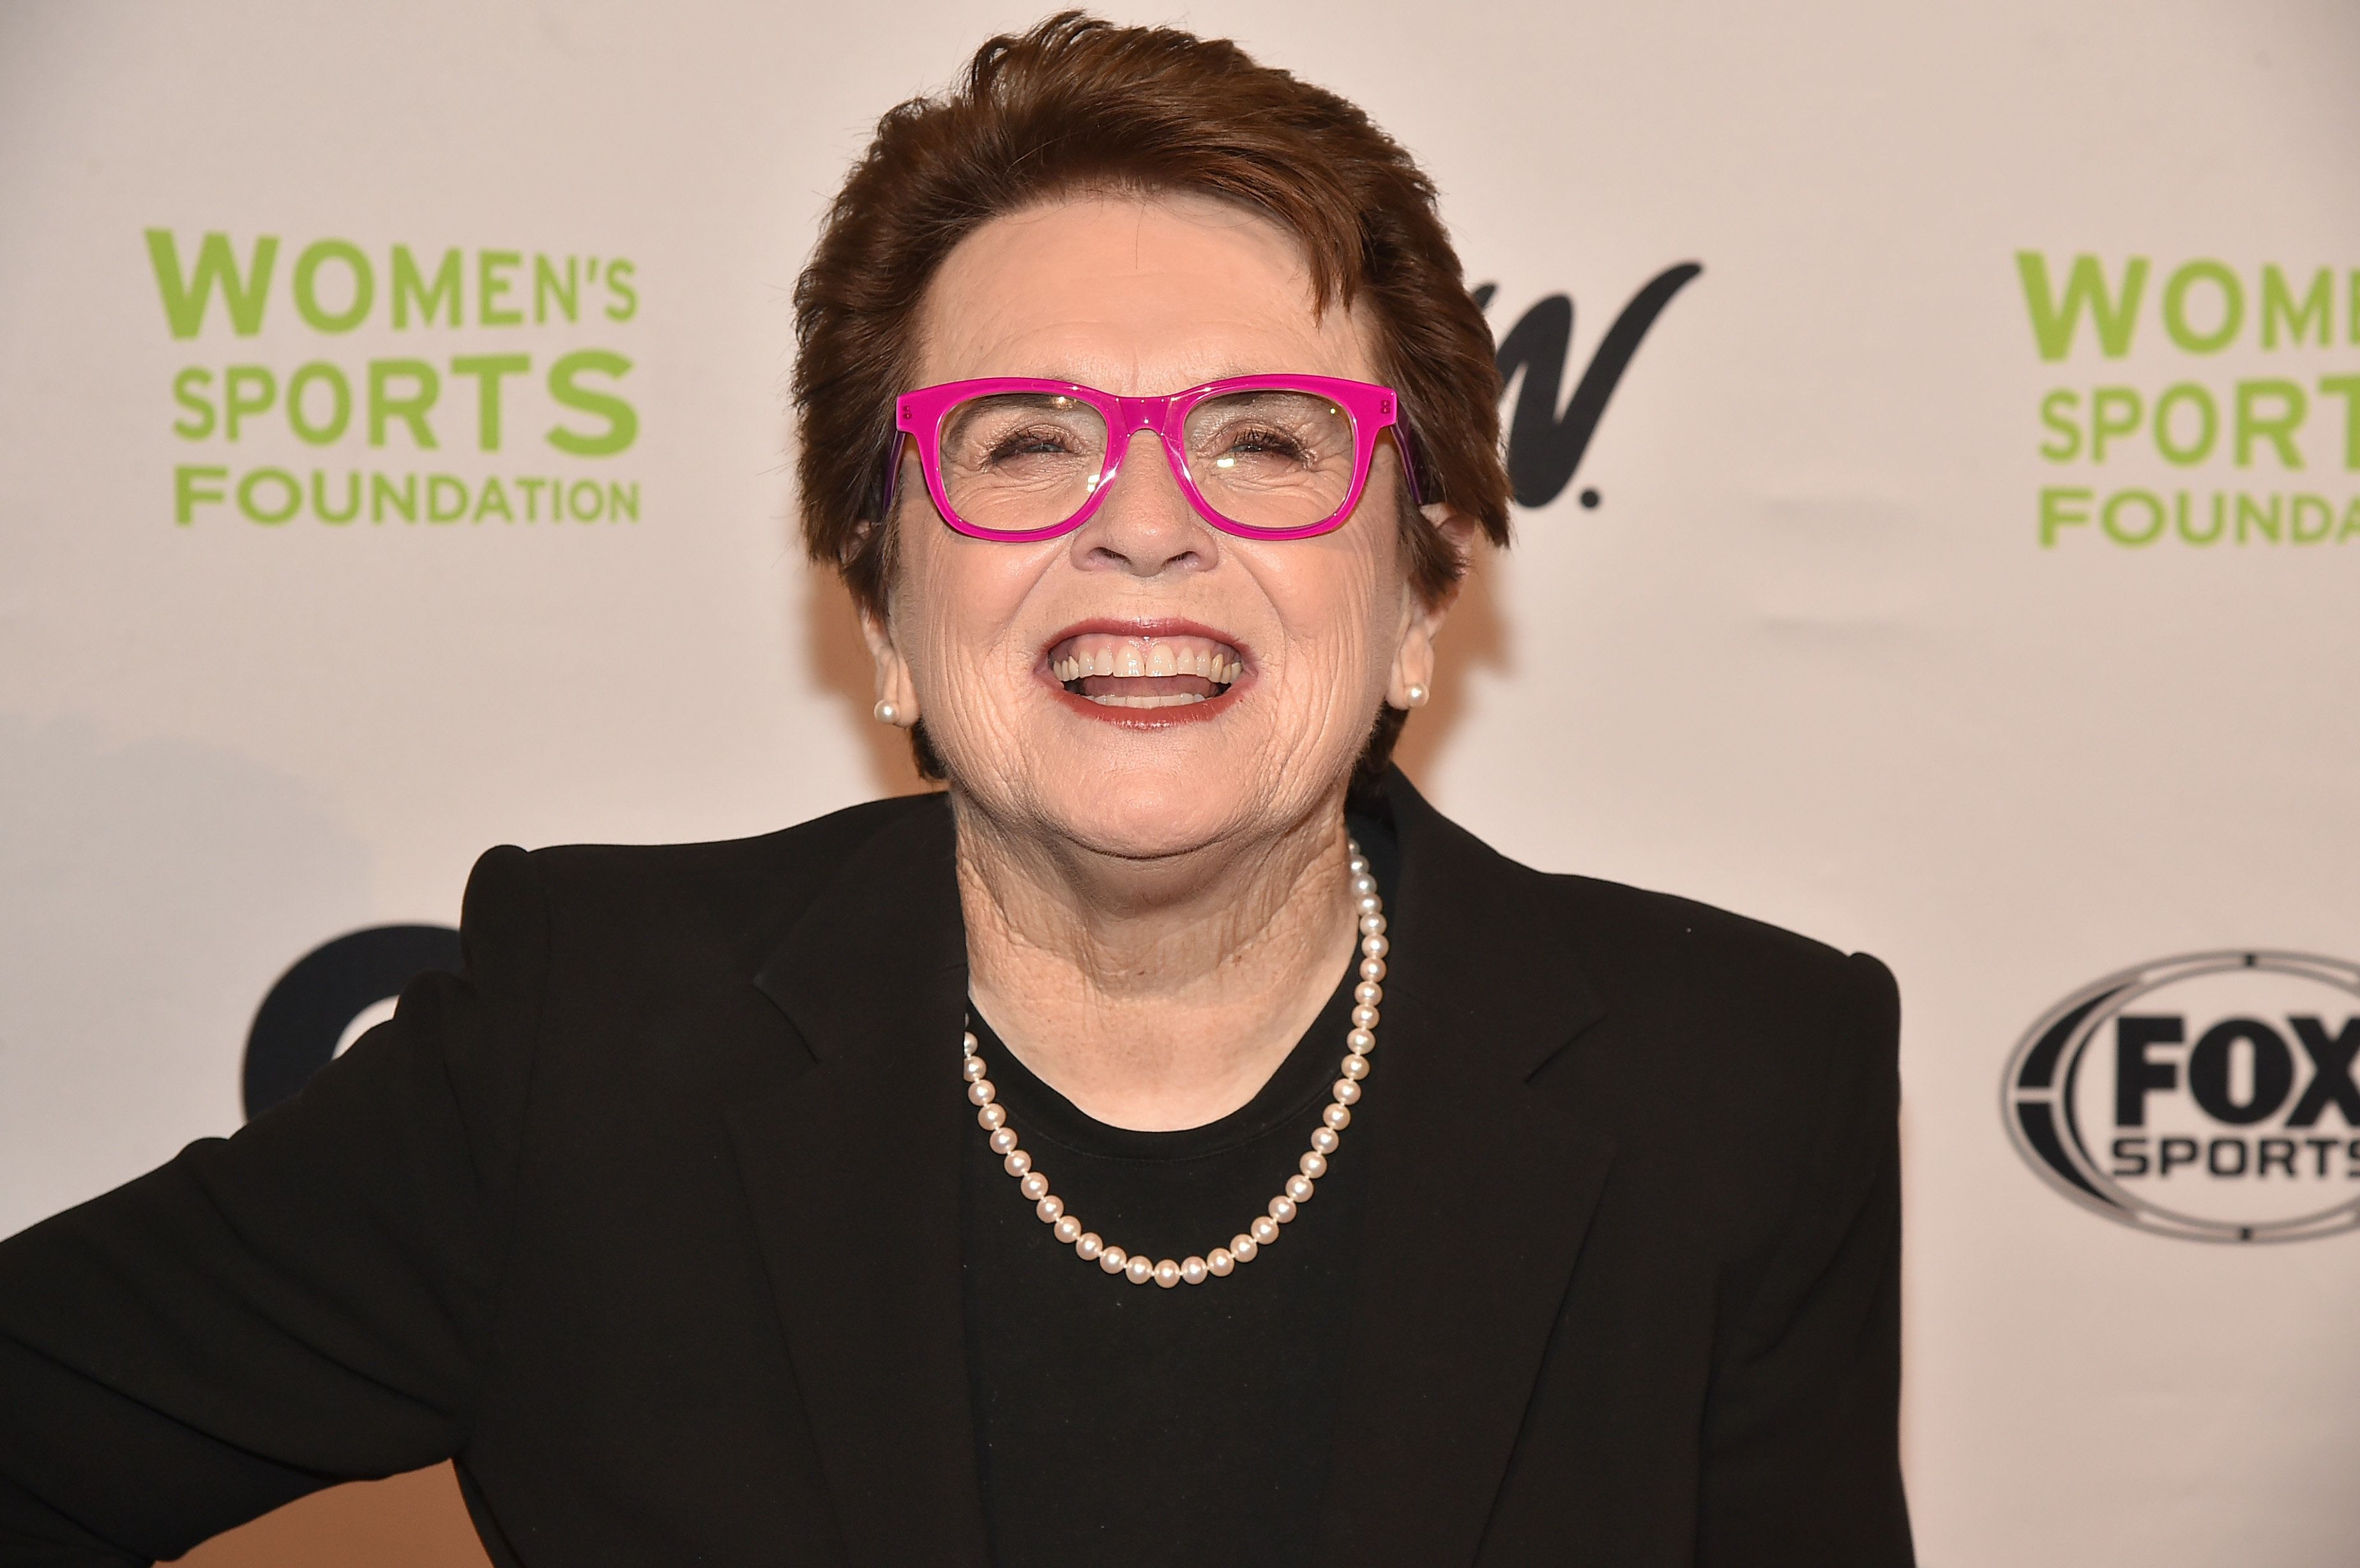 NEW YORK, NY - OCTOBER 19:  Tennis player Billie Jean King attends the 37th Annual Salute To Women In Sports Gala at Cipriani Wall Street on October 19, 2016 in New York City.  (Photo by Theo Wargo/Getty Images for Women's Sports Foundation )